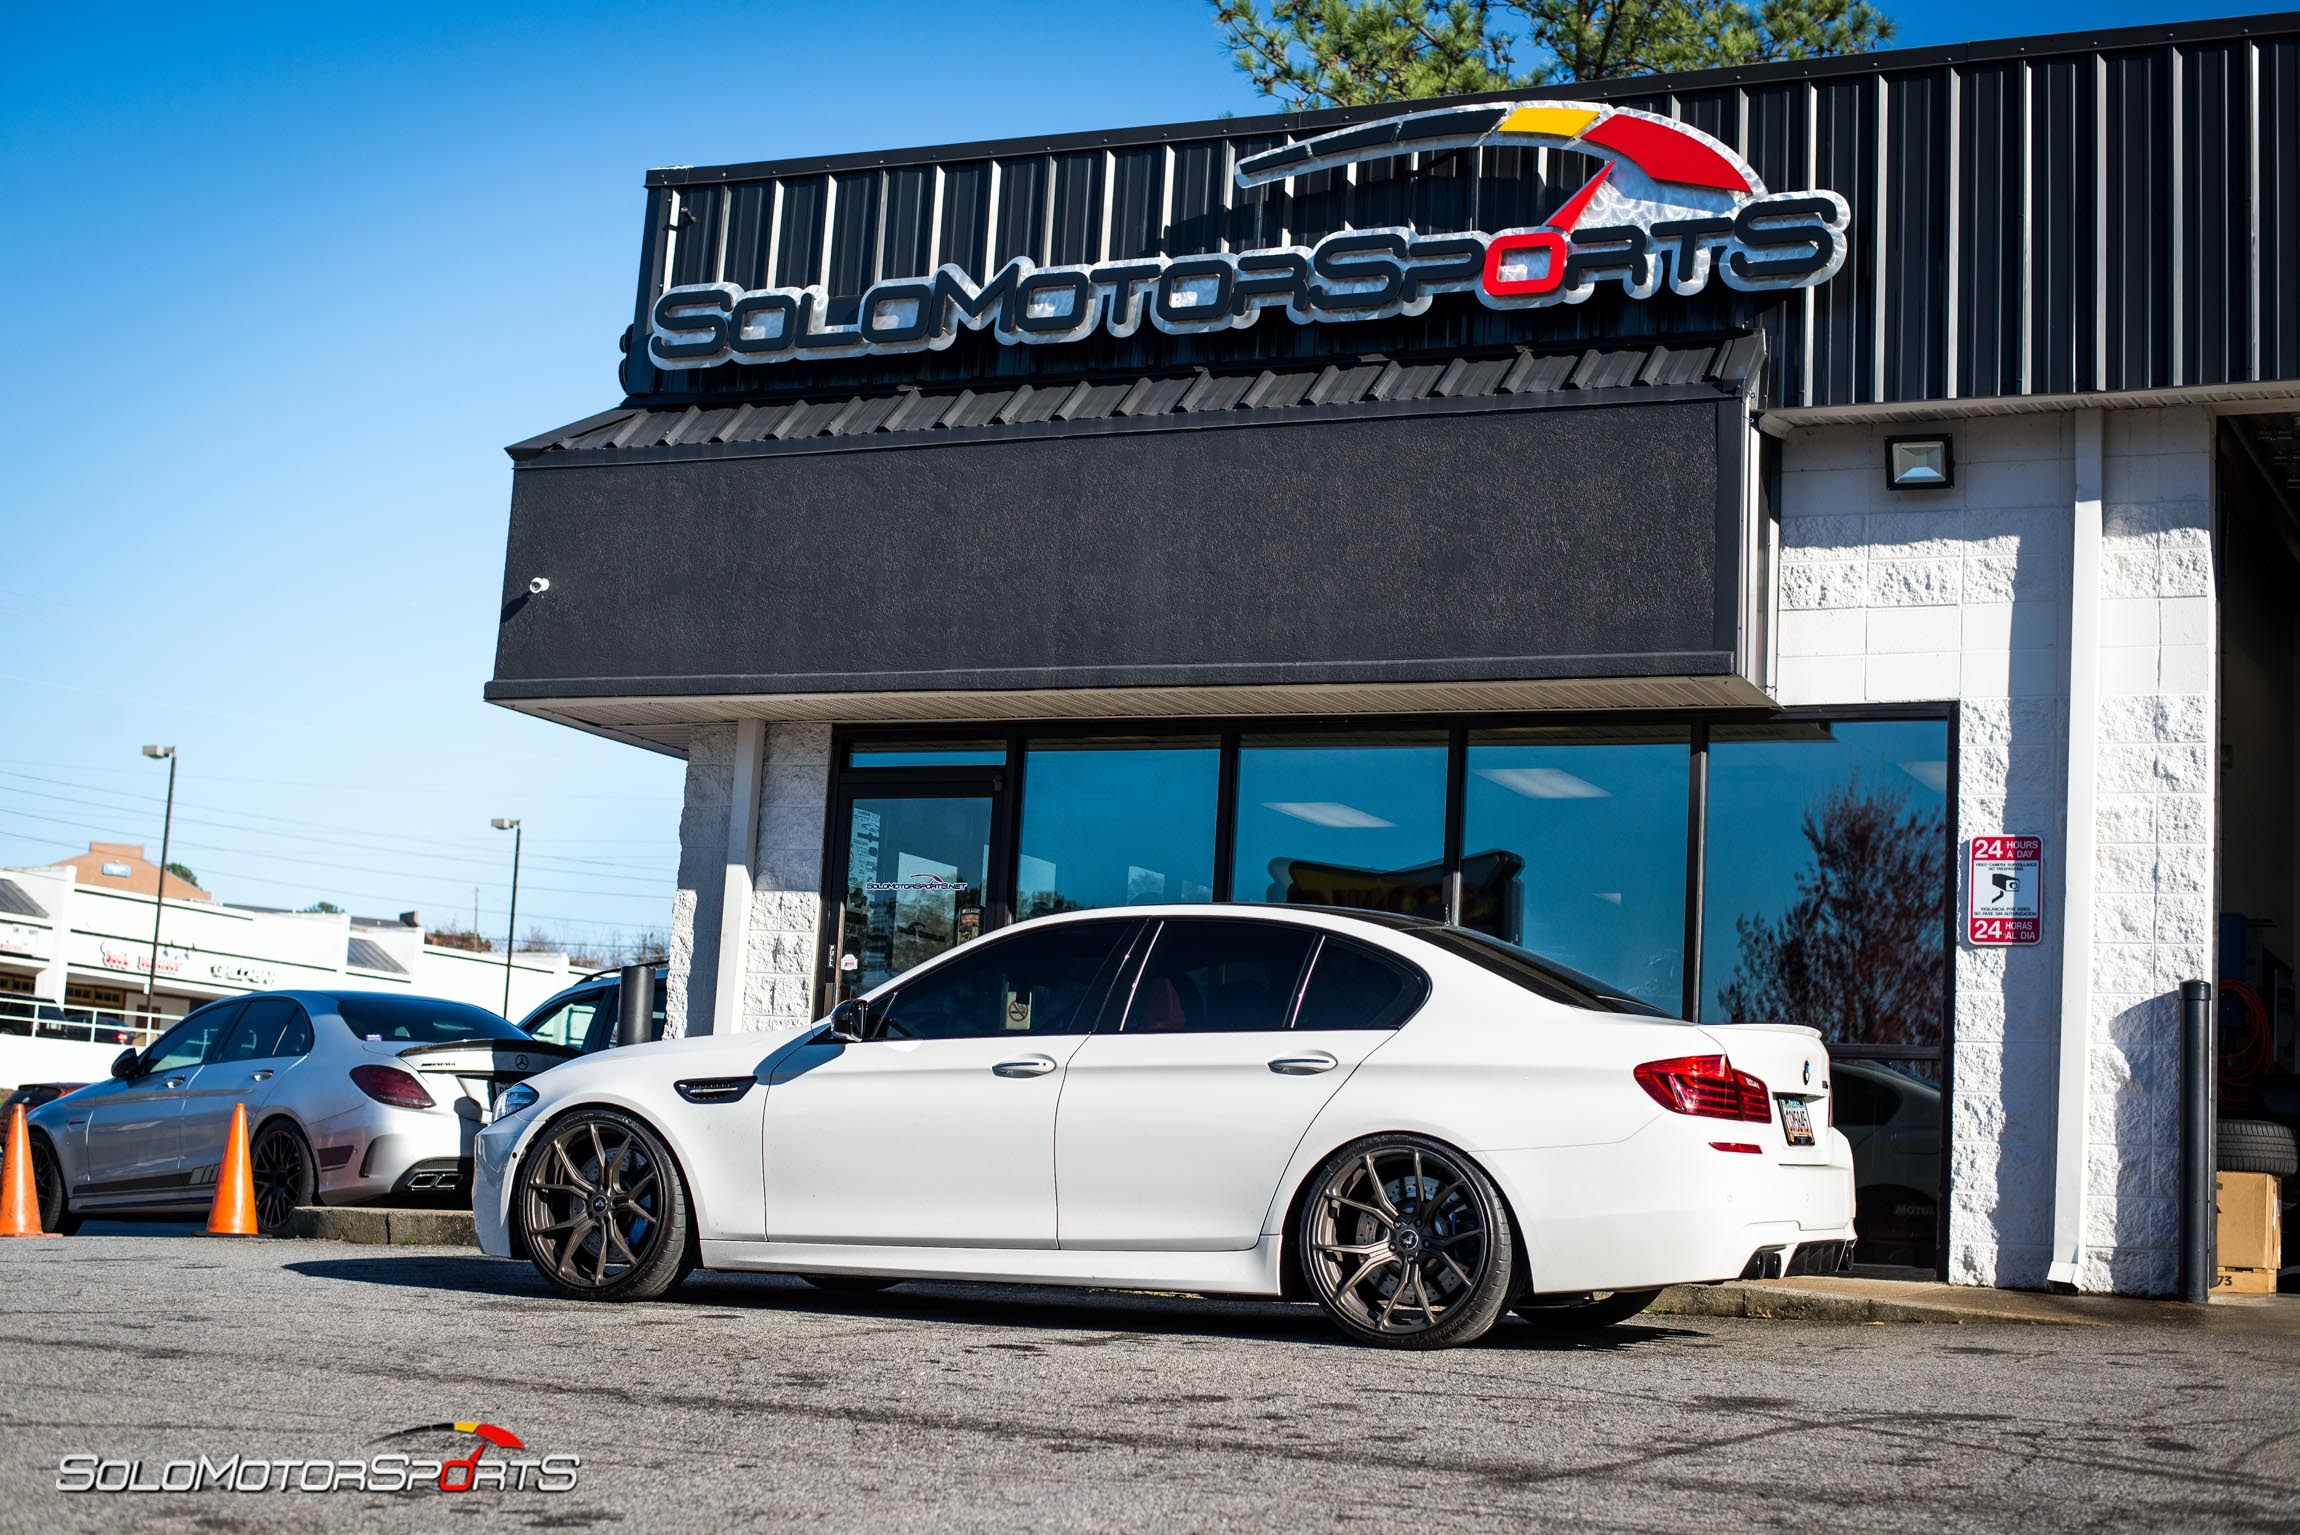 bmw m5 suspension coilover kit kw hotchkis kit one stop shop atlanta ga solo motorsports mpower mperformance suspension install